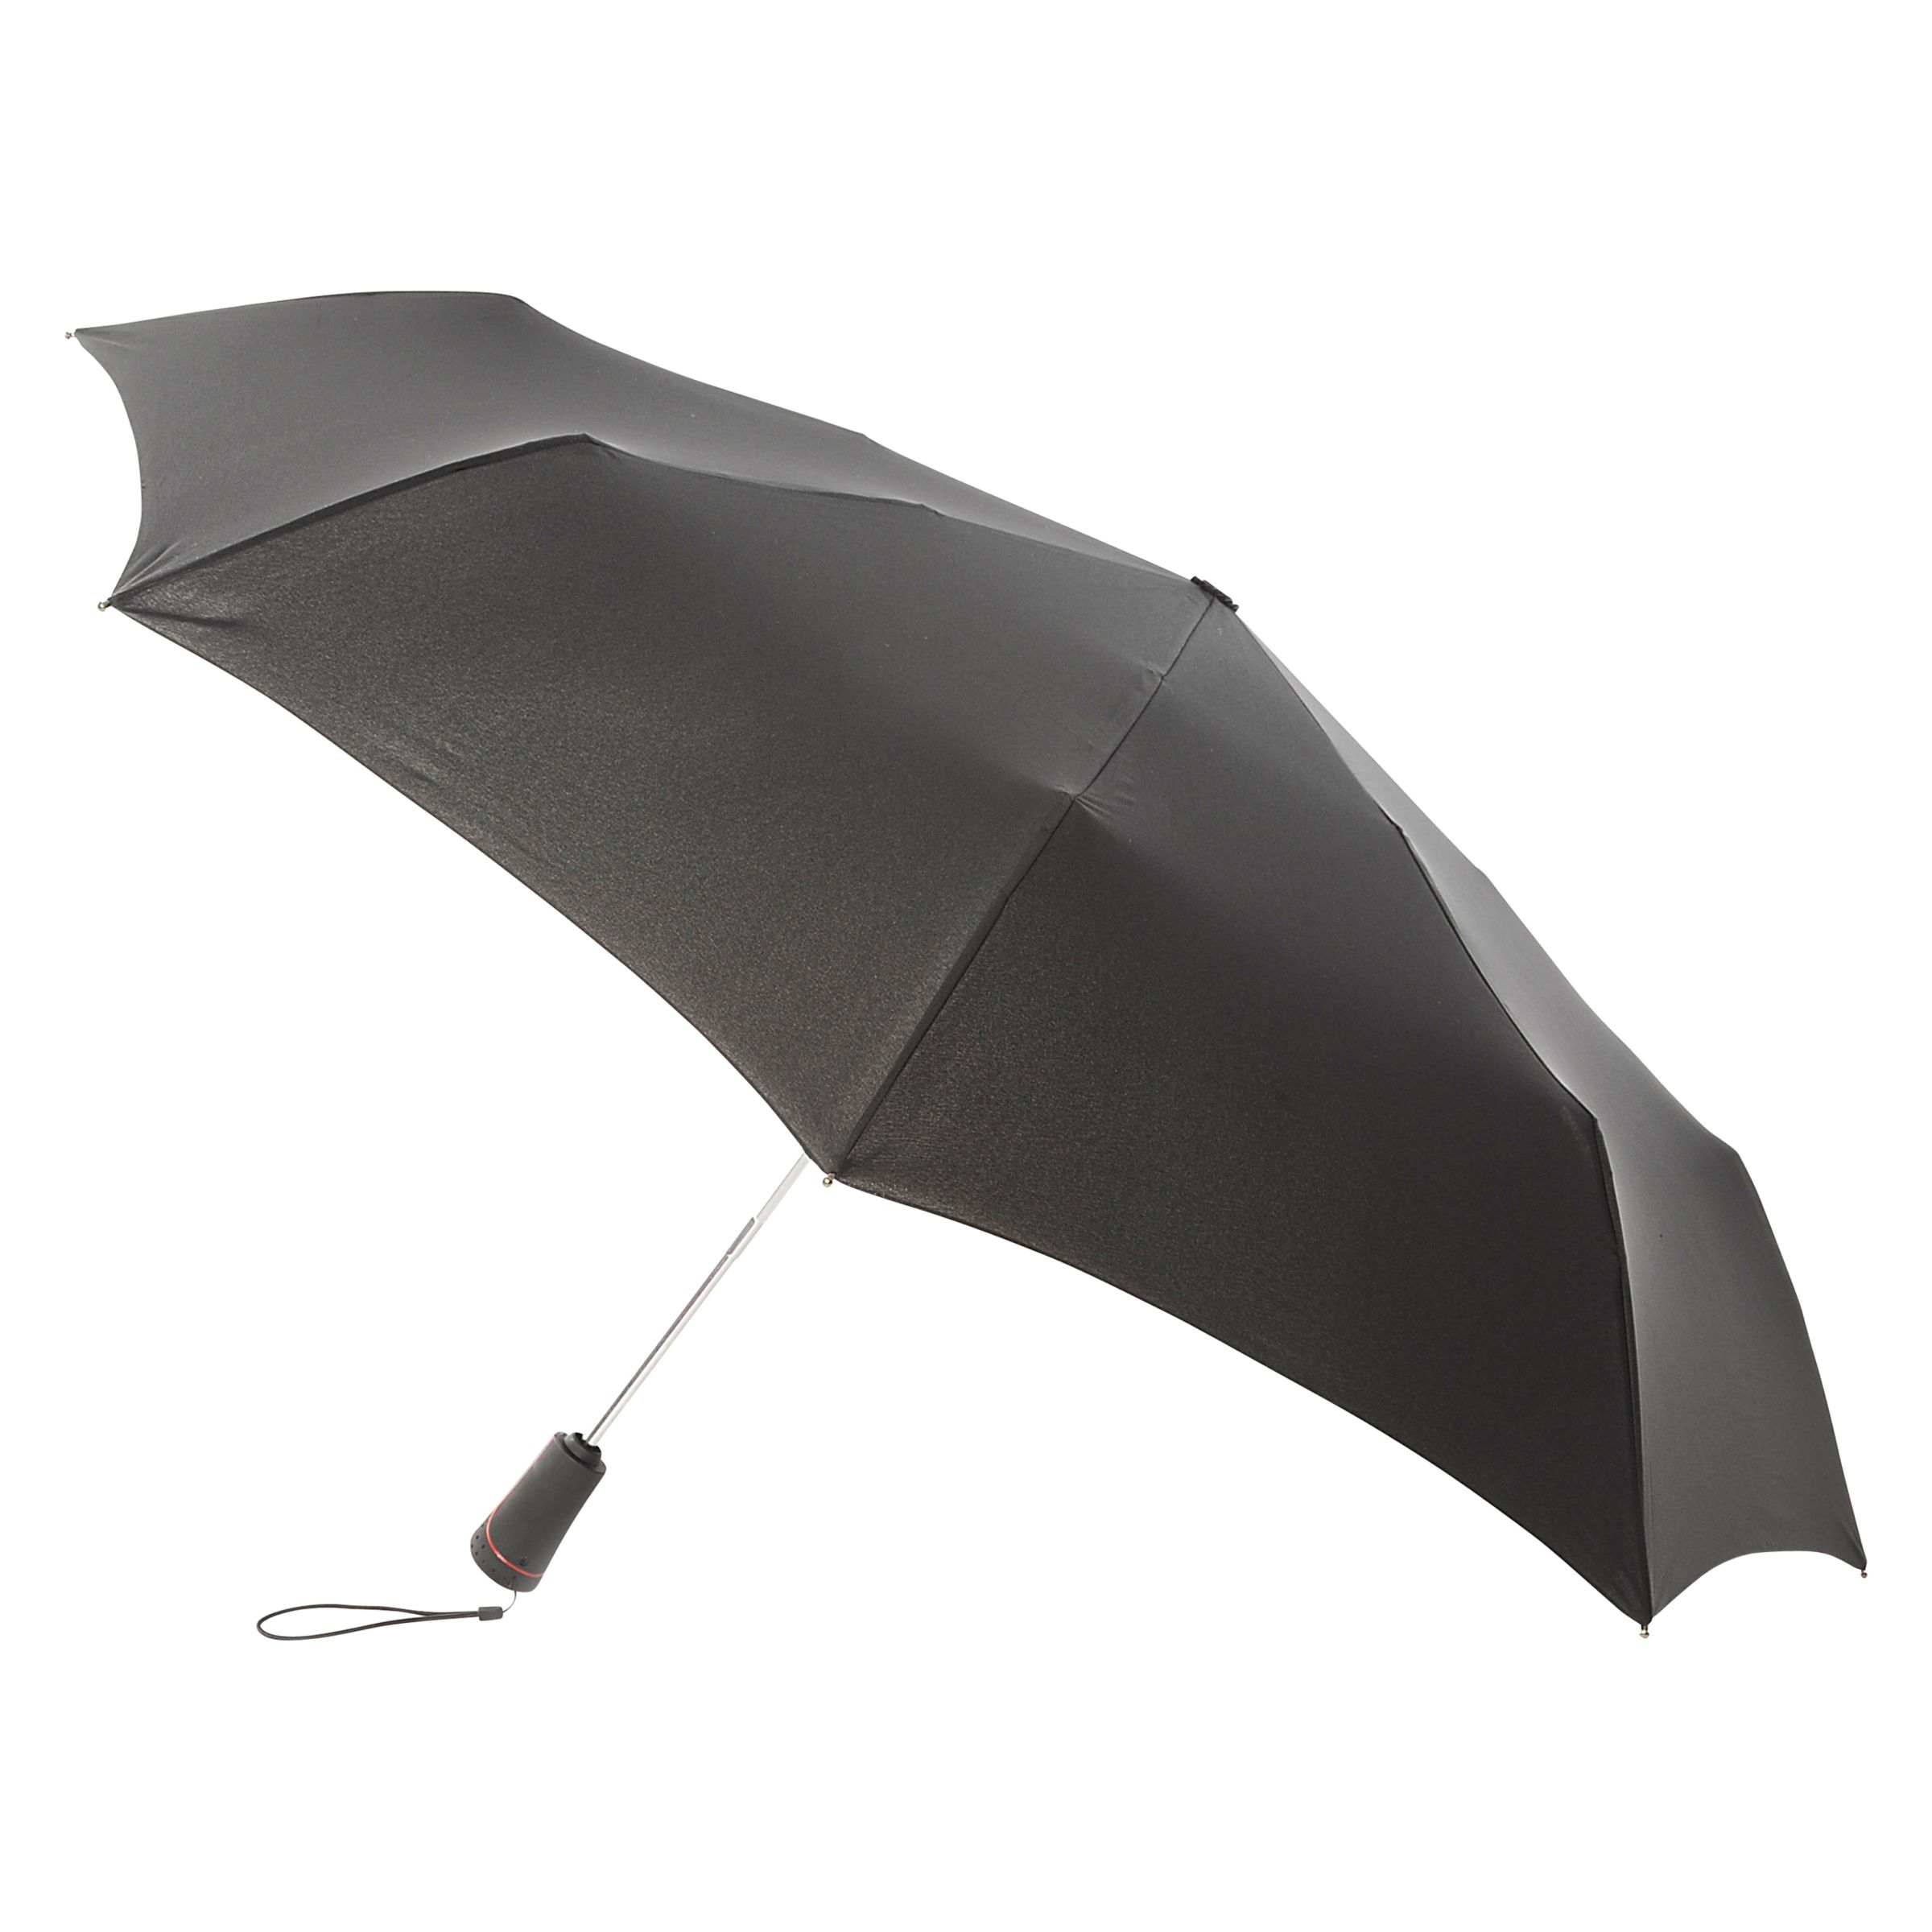 Totes totes XTRA STRONG Auto Open/Close Umbrella, Black